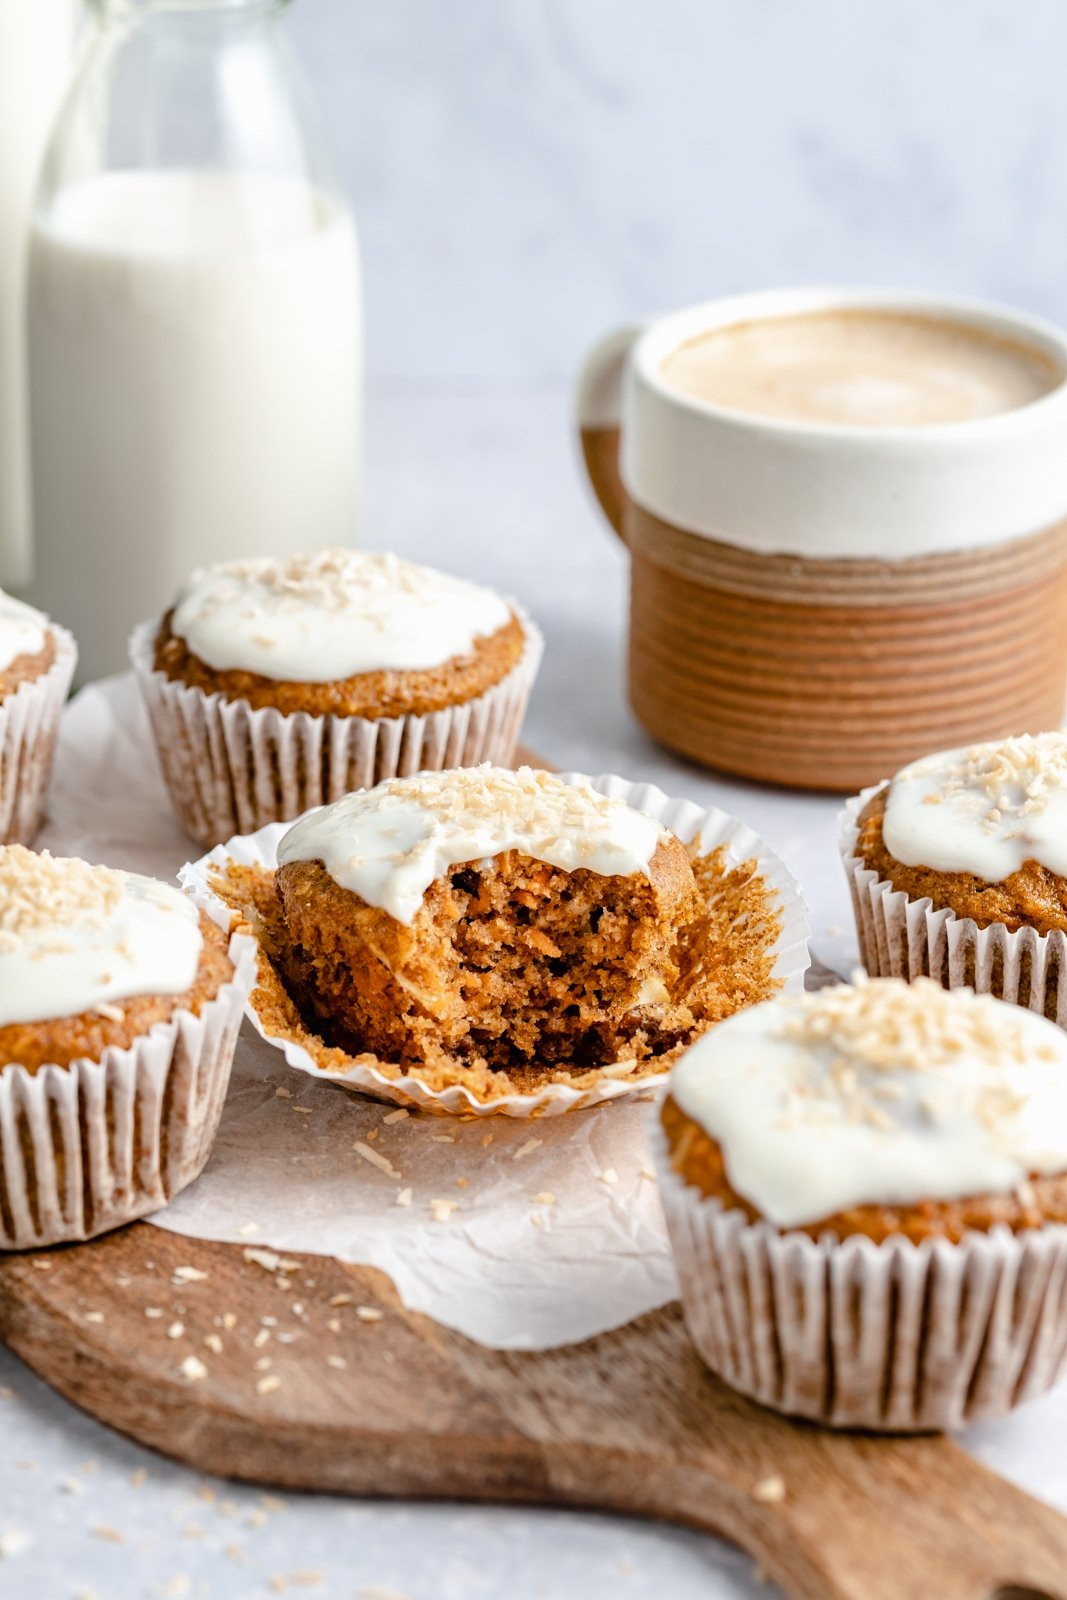 carrot cake muffin with a bite taken out